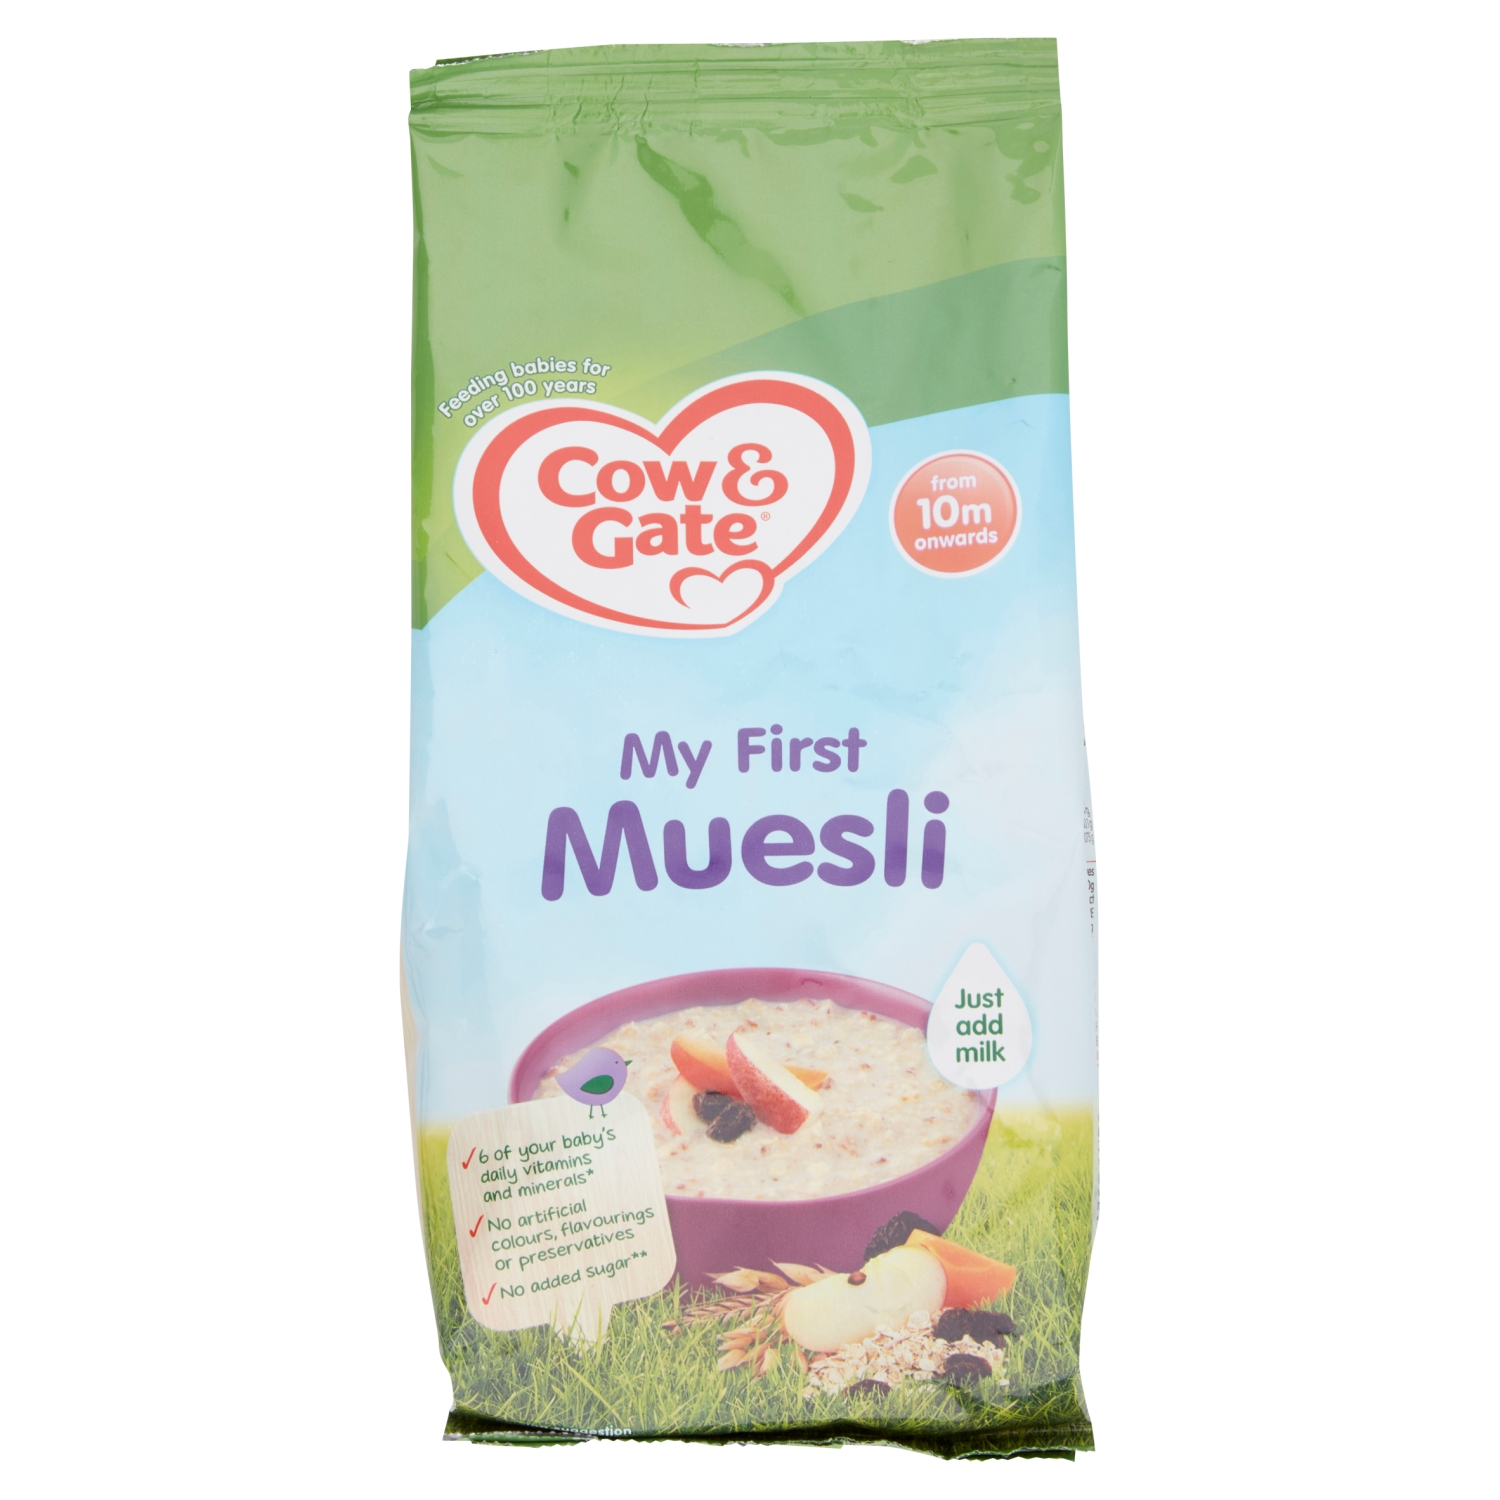 Cow & Gate My First Muesli from 10m Onwards 330g